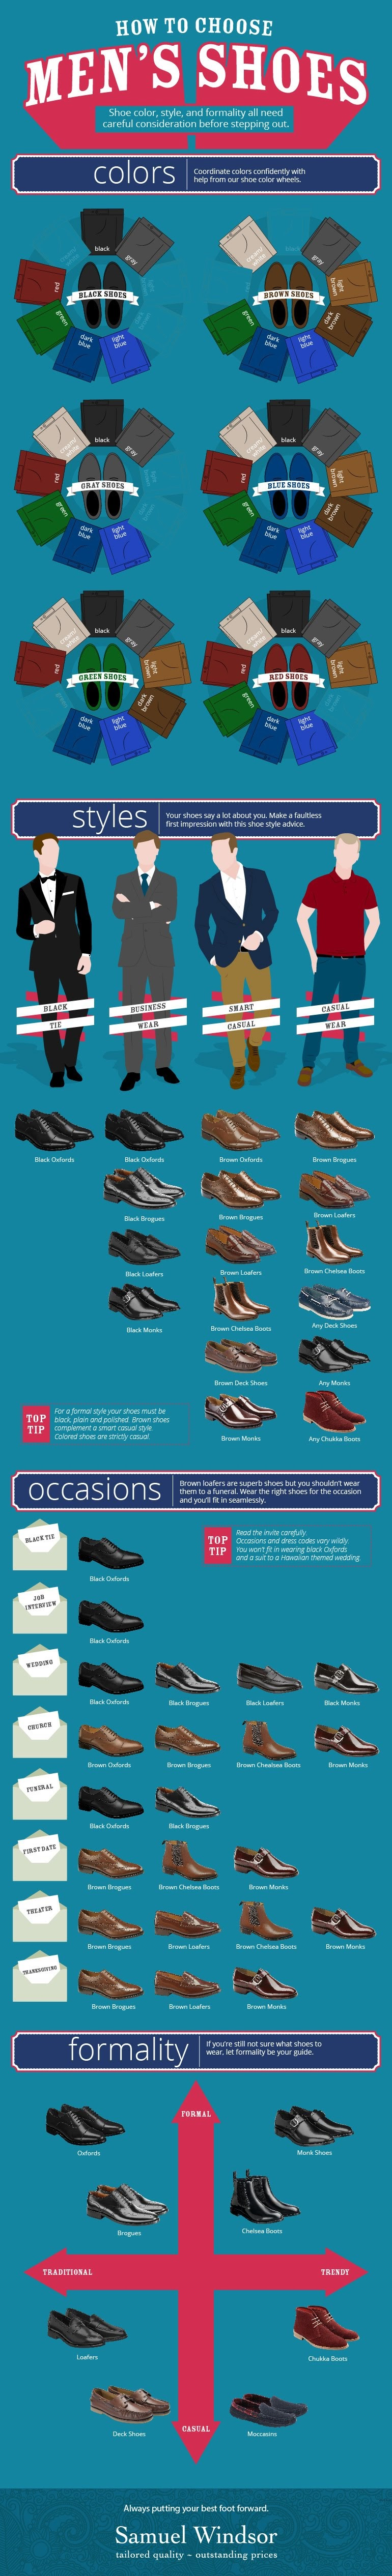 How to choose men's shoes #infographic